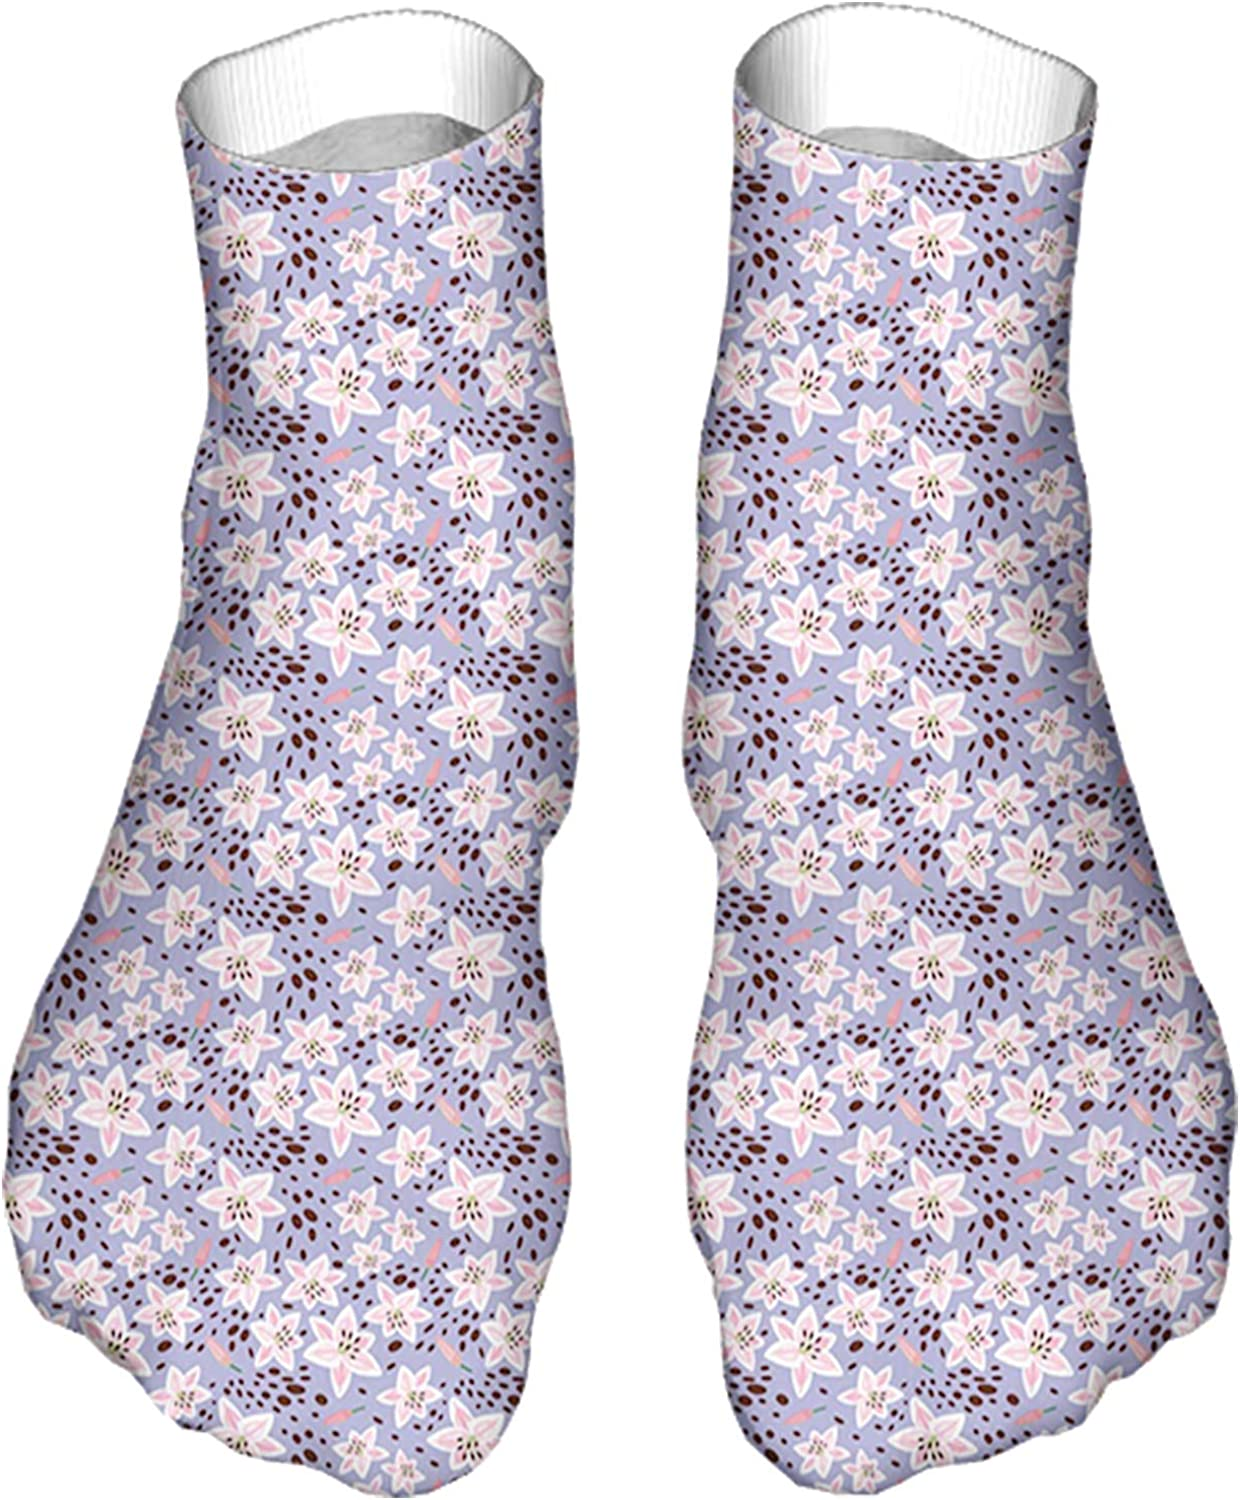 Men's and Women's Fun Socks Printed Cool Novelty Funny Socks,Continuous Pretty Pattern of Exotic Flower Petals and Buds